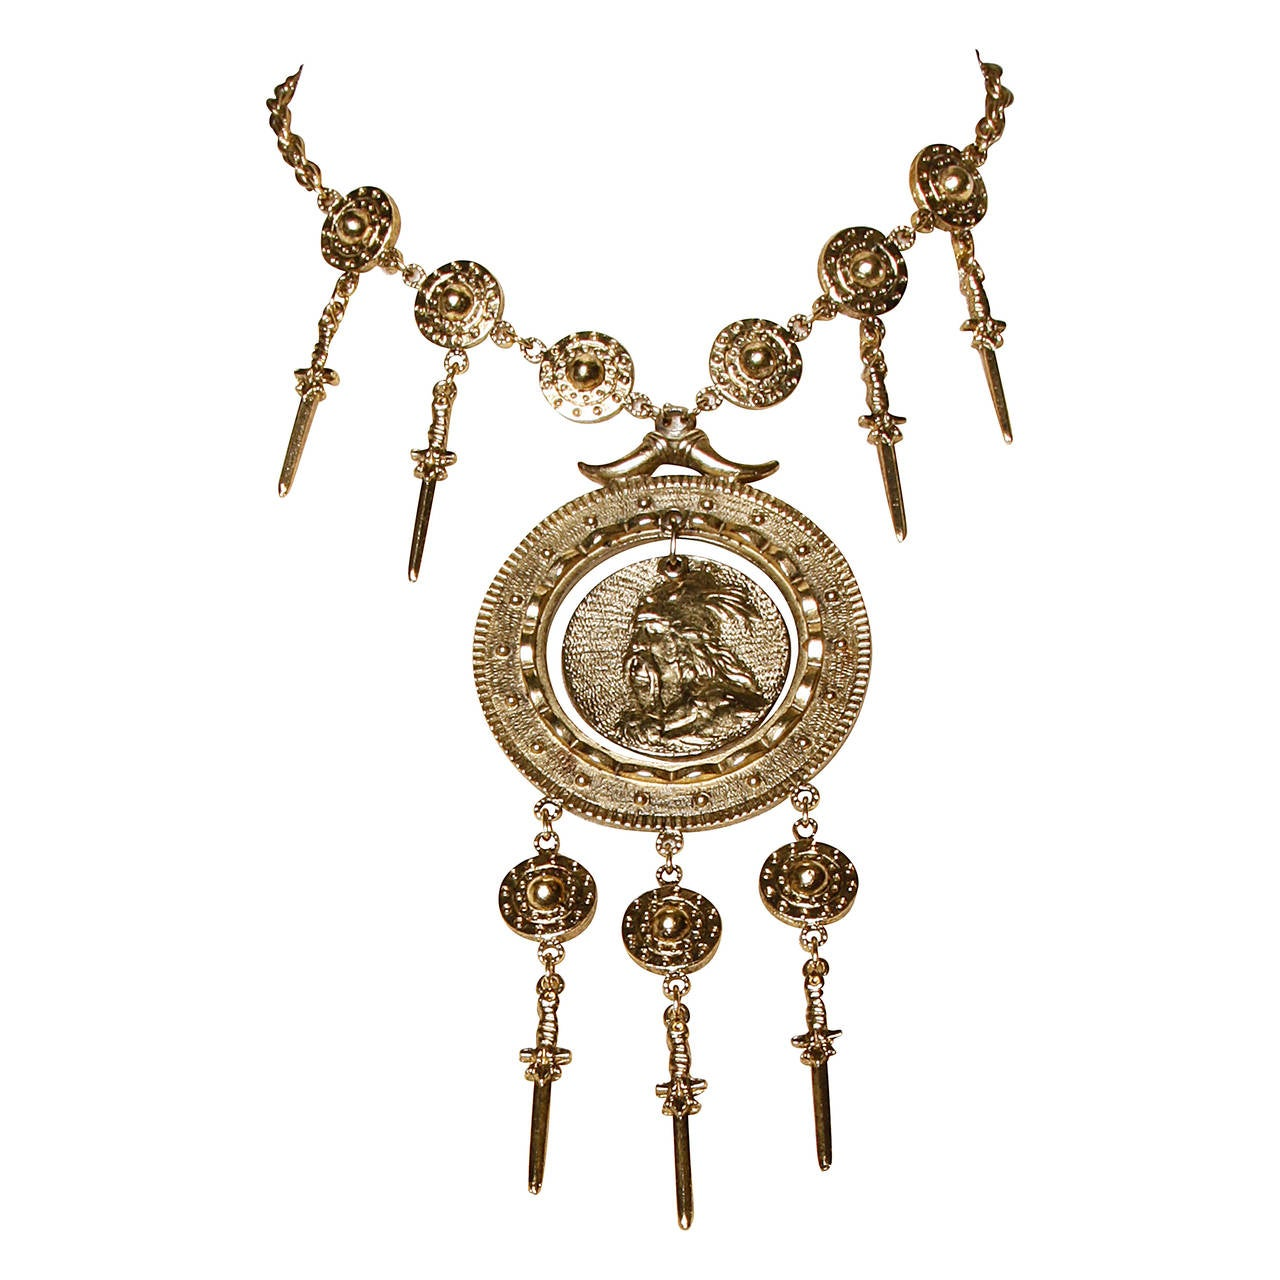 Iconic Signed Trifari 1970s Viking Warrior Necklace with Swords + Shields For Sale